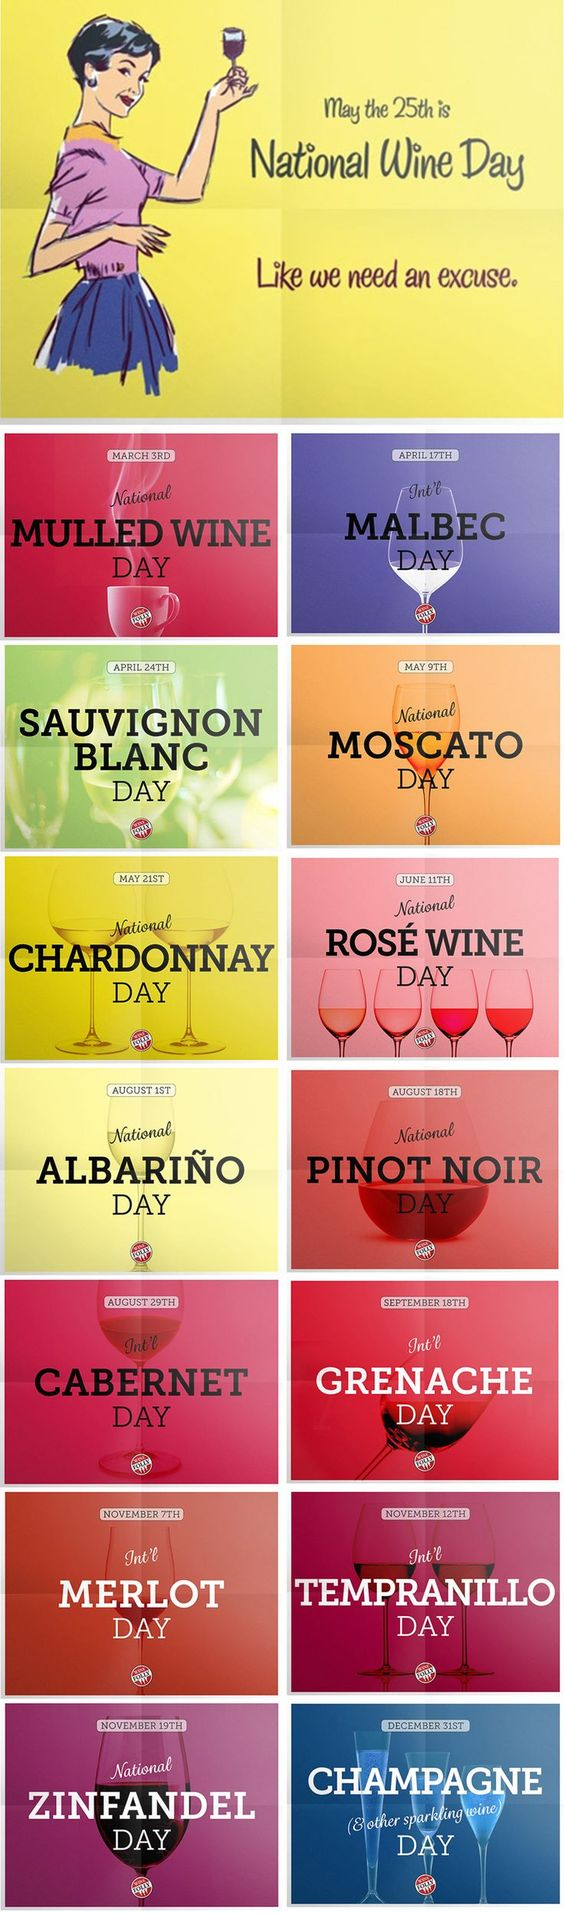 National Wine Days of the Year /jenbrasher/ We missed mulled wine day, but we can still get the rest in!